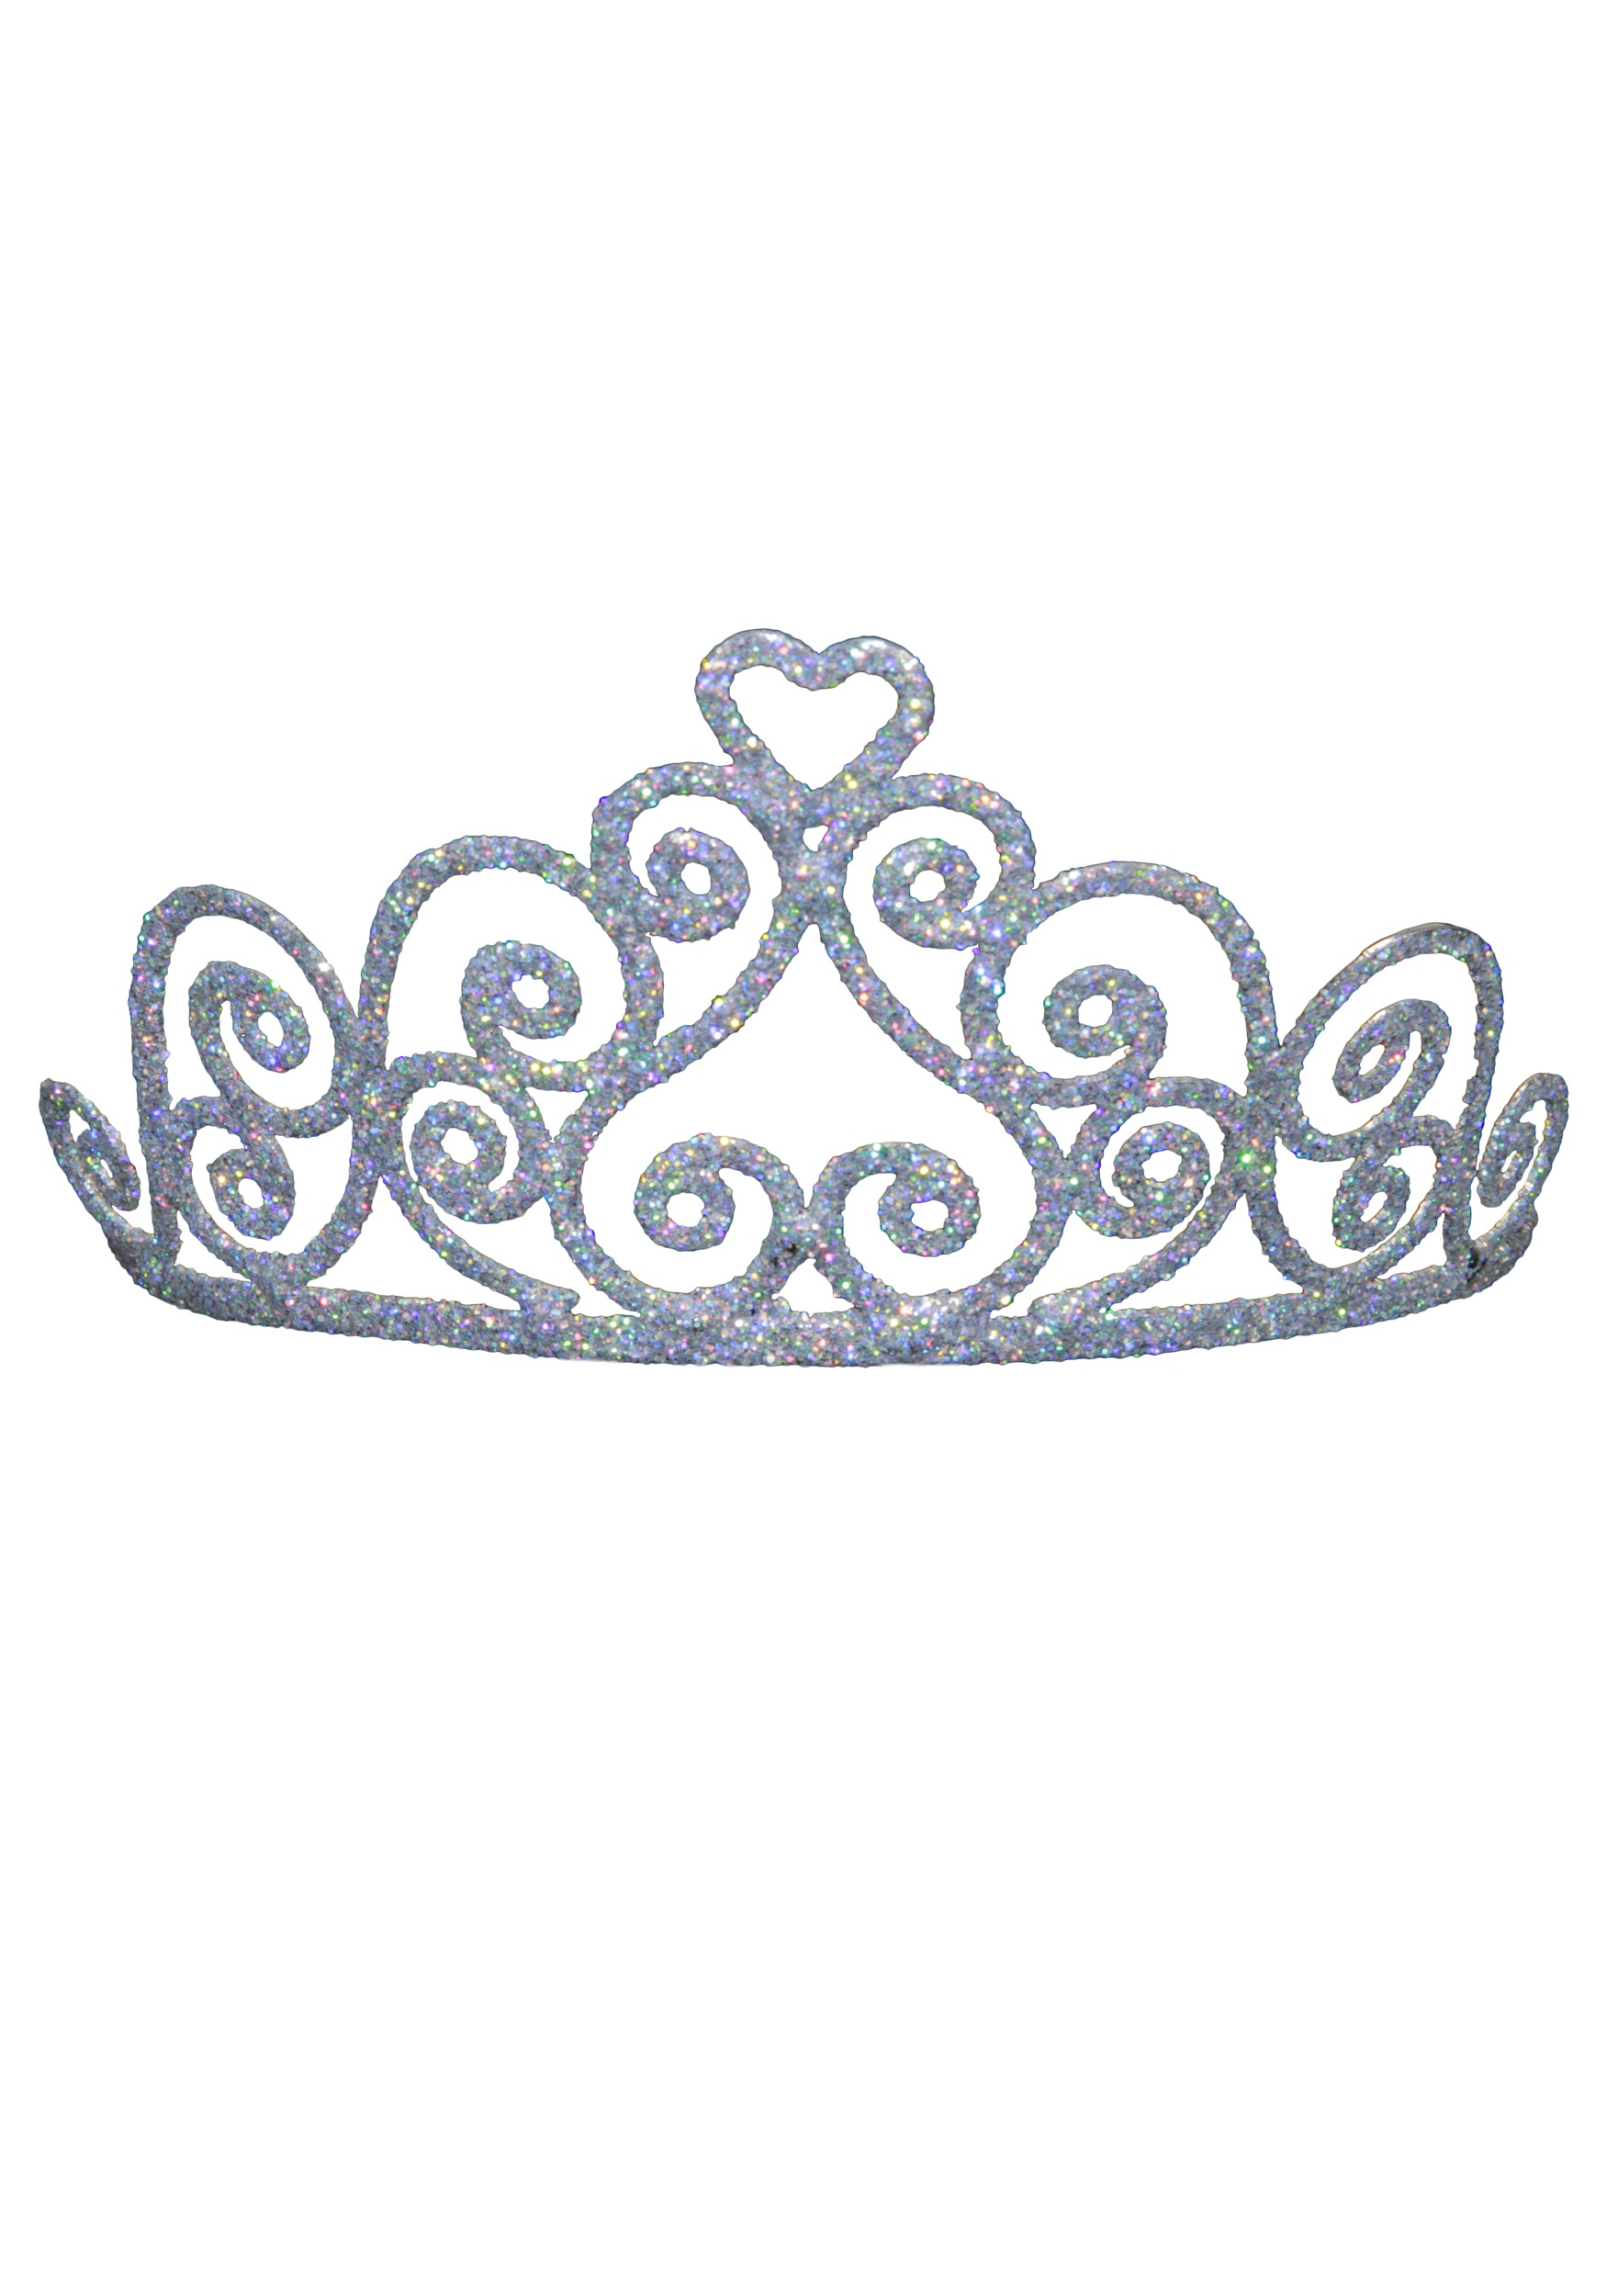 Adult Sparkle Heart Tiara-Adult Sparkle Heart Tiara-4